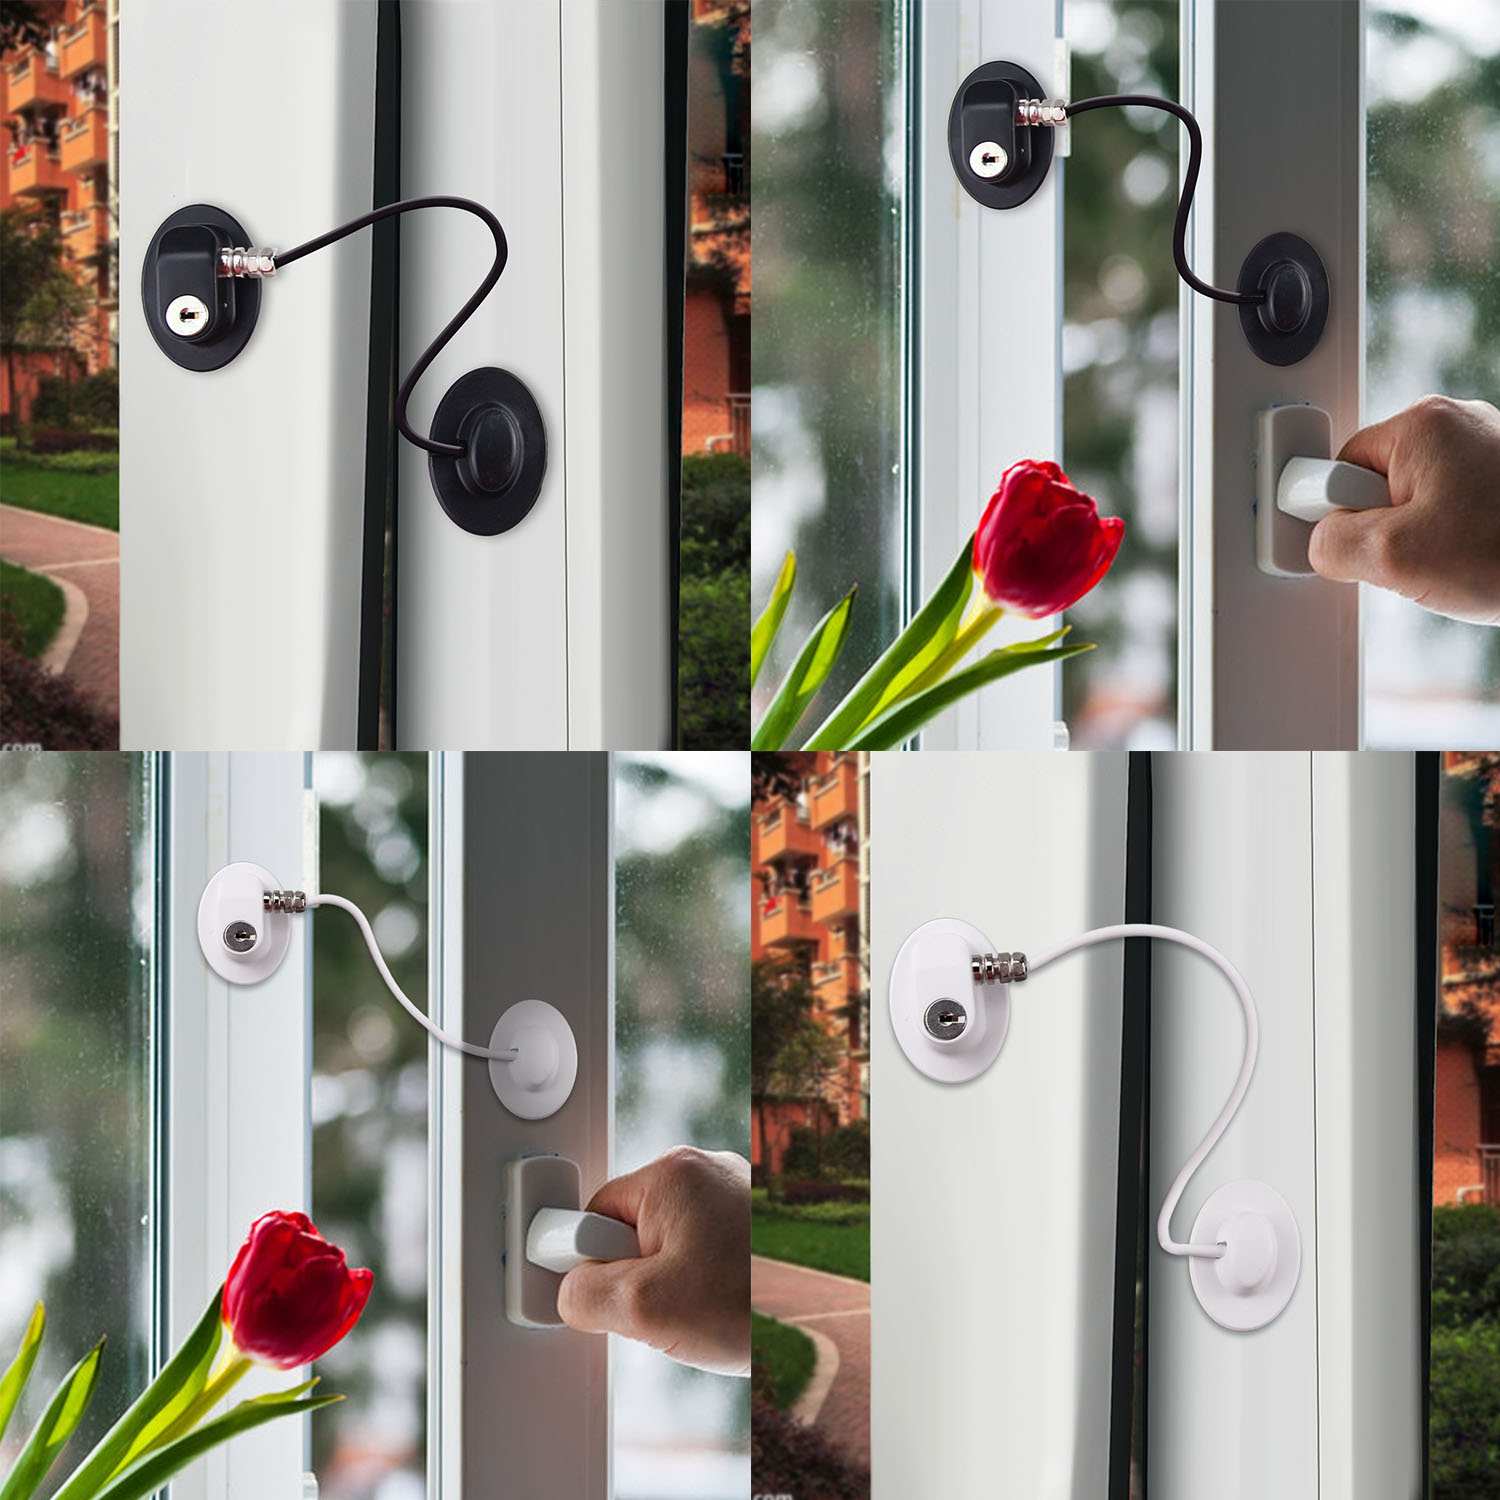 2PCS Child Self-adhesive Safety Locks Refrigerator Freezer Drawer Cupboard Cabinet Lock With Keys For Home Kitchen Living Room